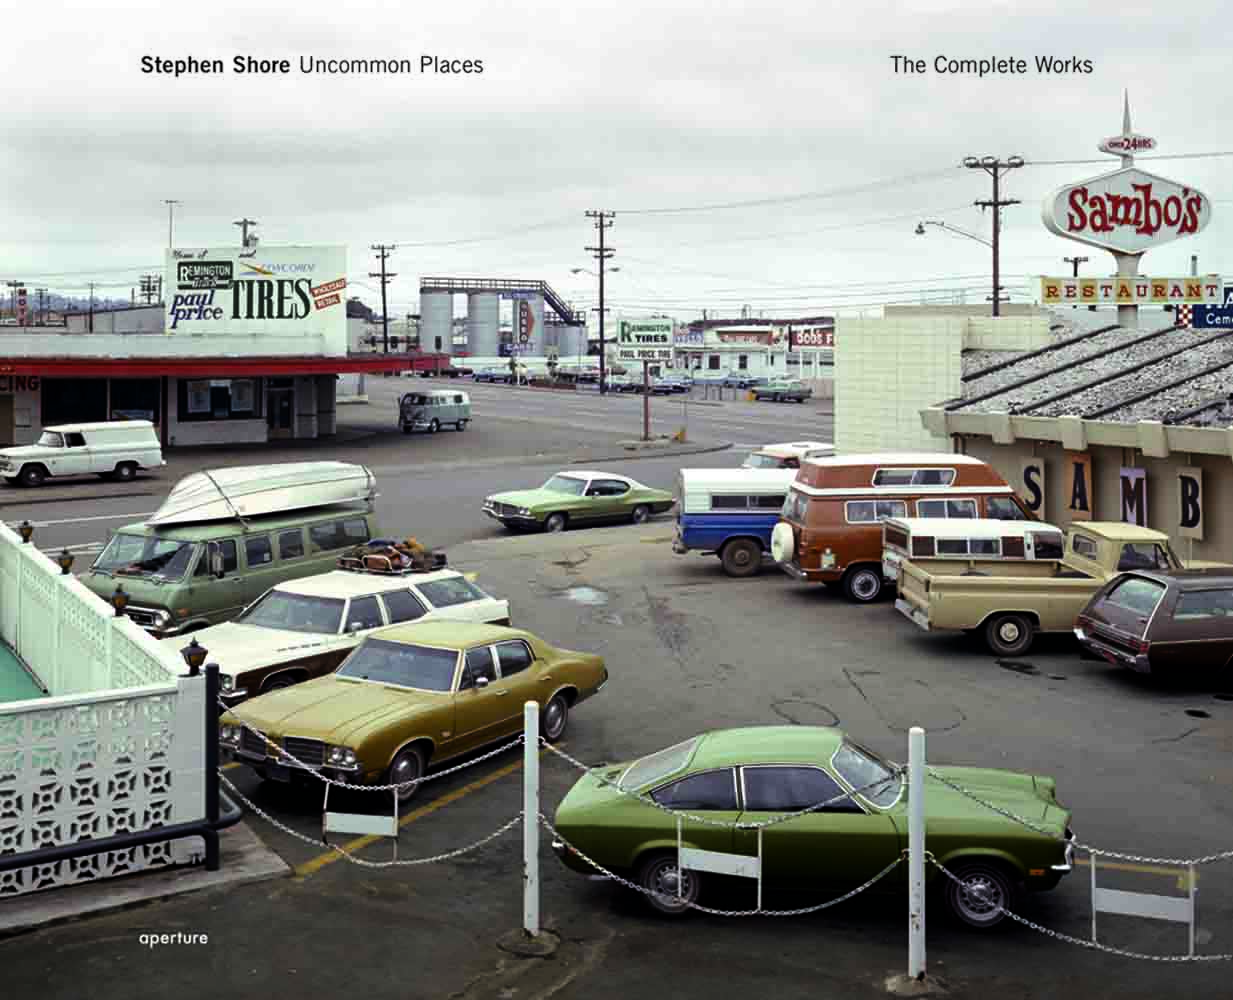 Steven Shore's Uncommon Places, 2004                               Stephen Shore turns his eye on the American experience in Uncommon Places, with photographs of banal landscapes, main streets and other places that make up American mythology.